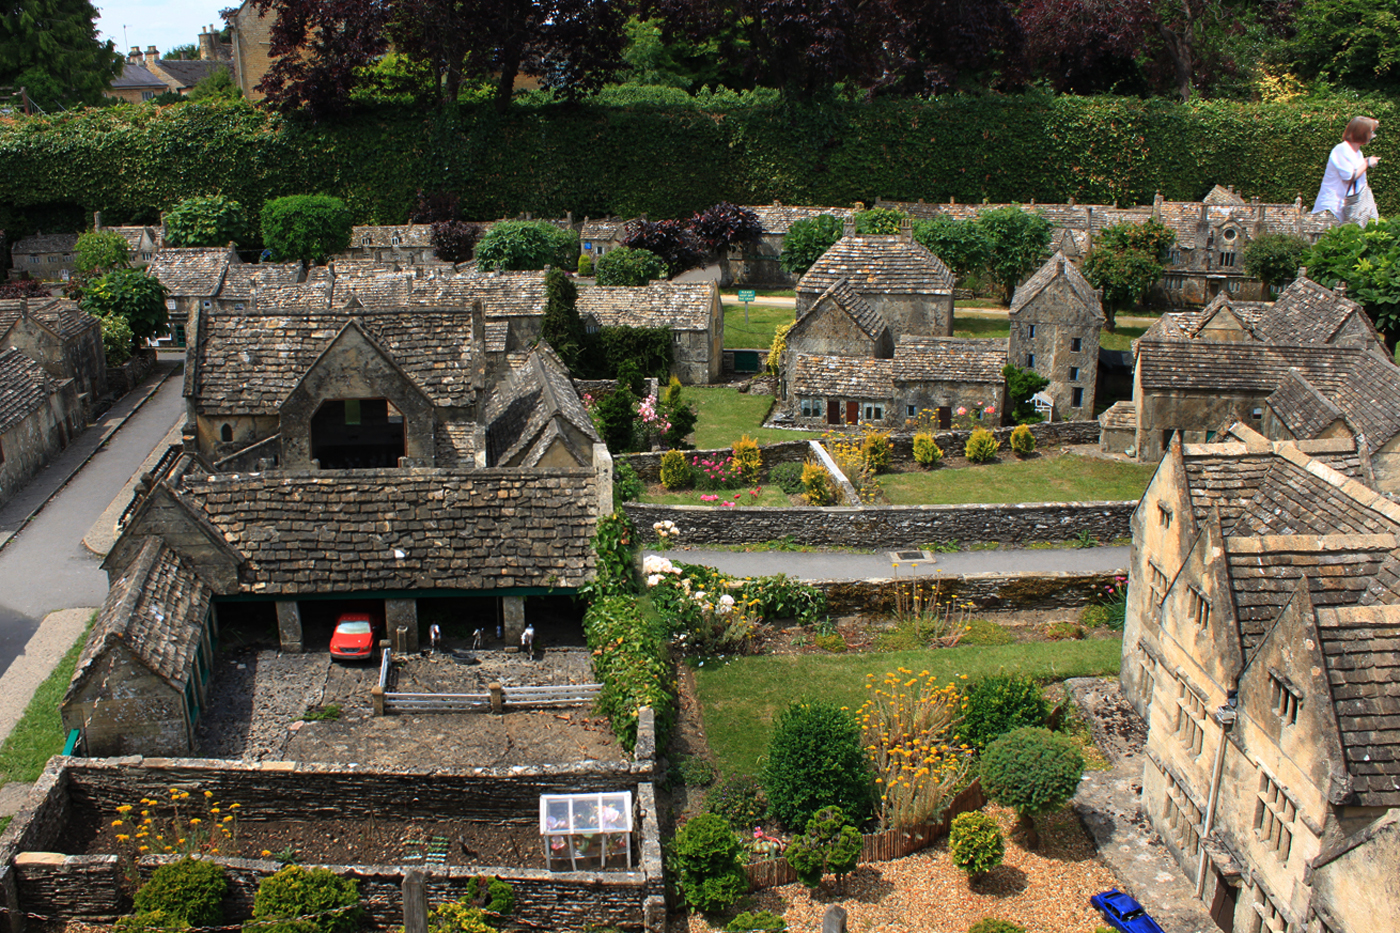 COTSWOLDS MINI VILLAGE by Don Dobson